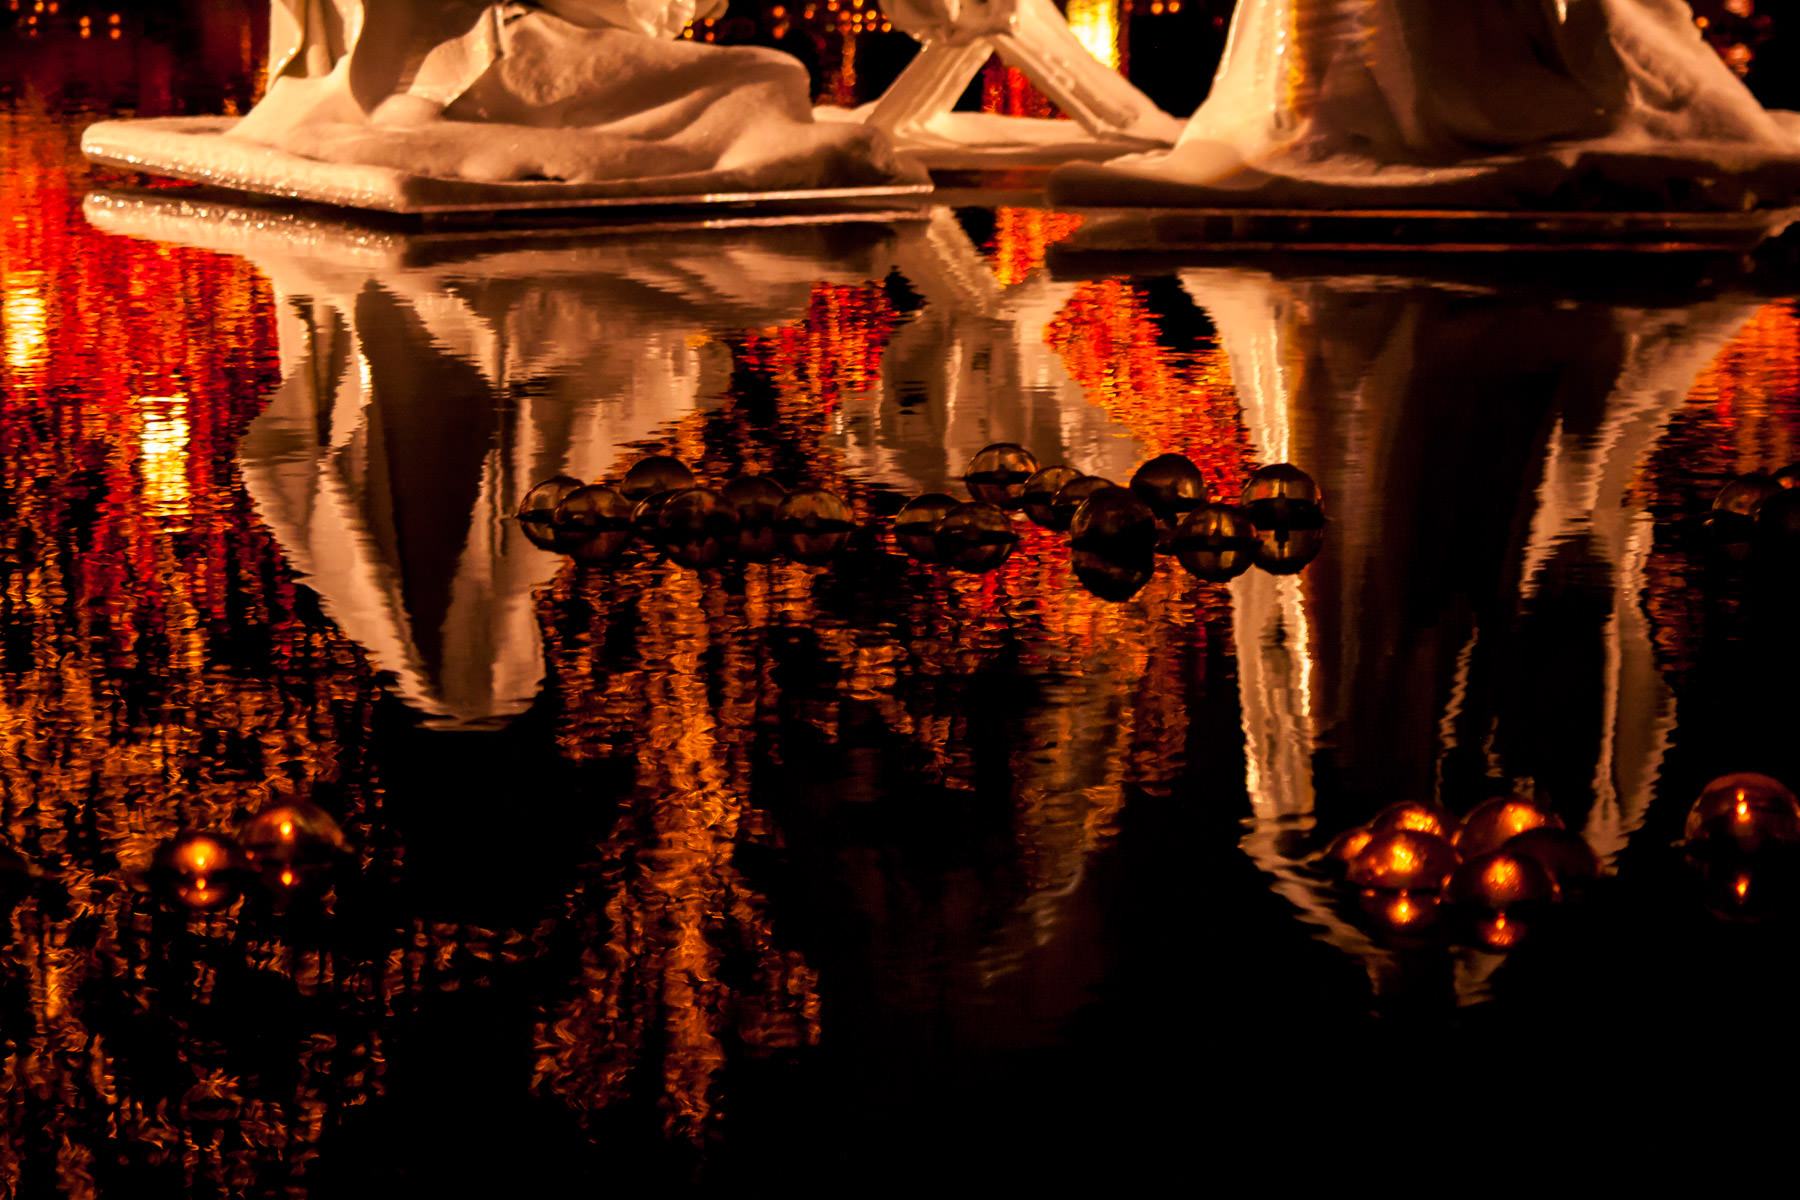 Religious statues reflected in a fountain's water at Temple Square, Salt Lake City, Utah.